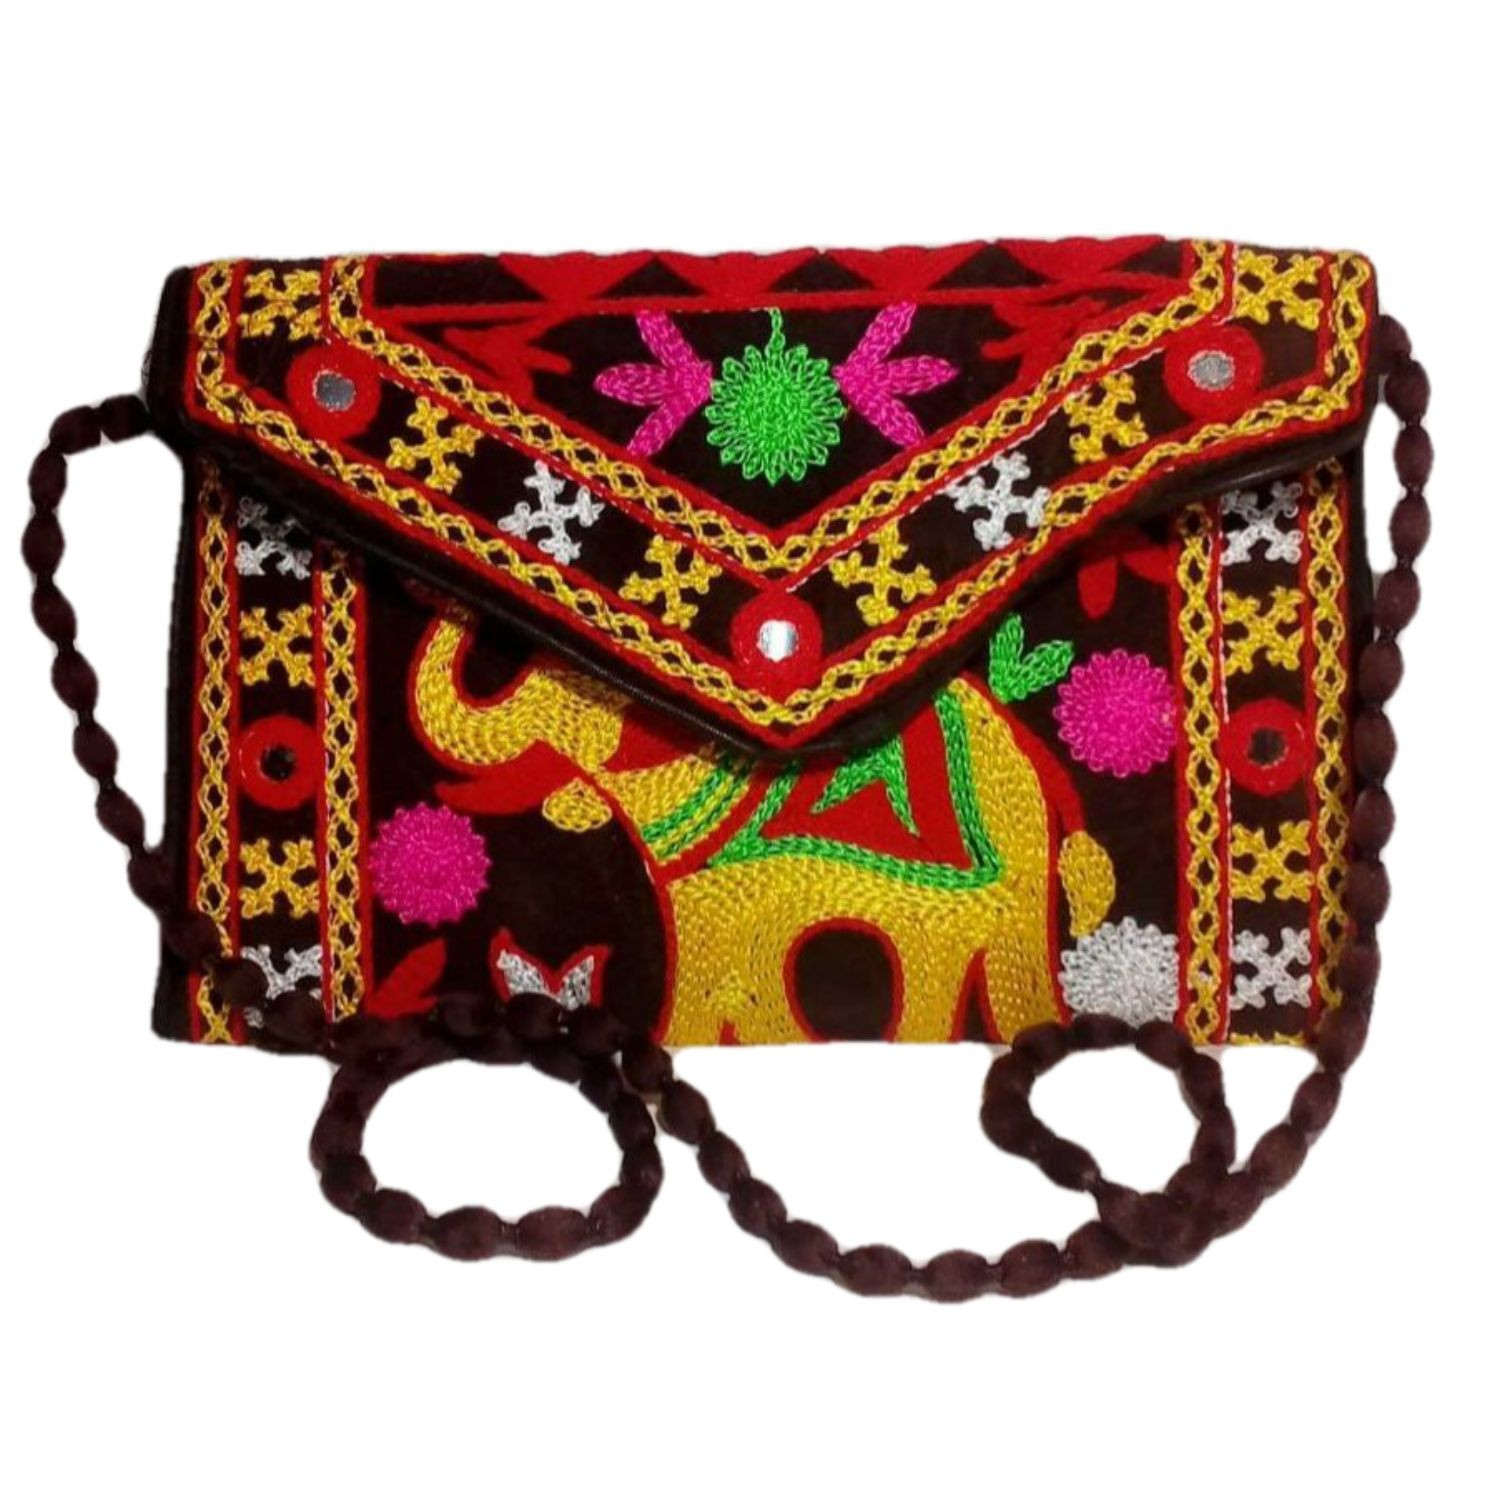 Handmade Excellent Brown Genuine Sling Bag with embroidery work  by Women Self Help Groups of Rajasthan